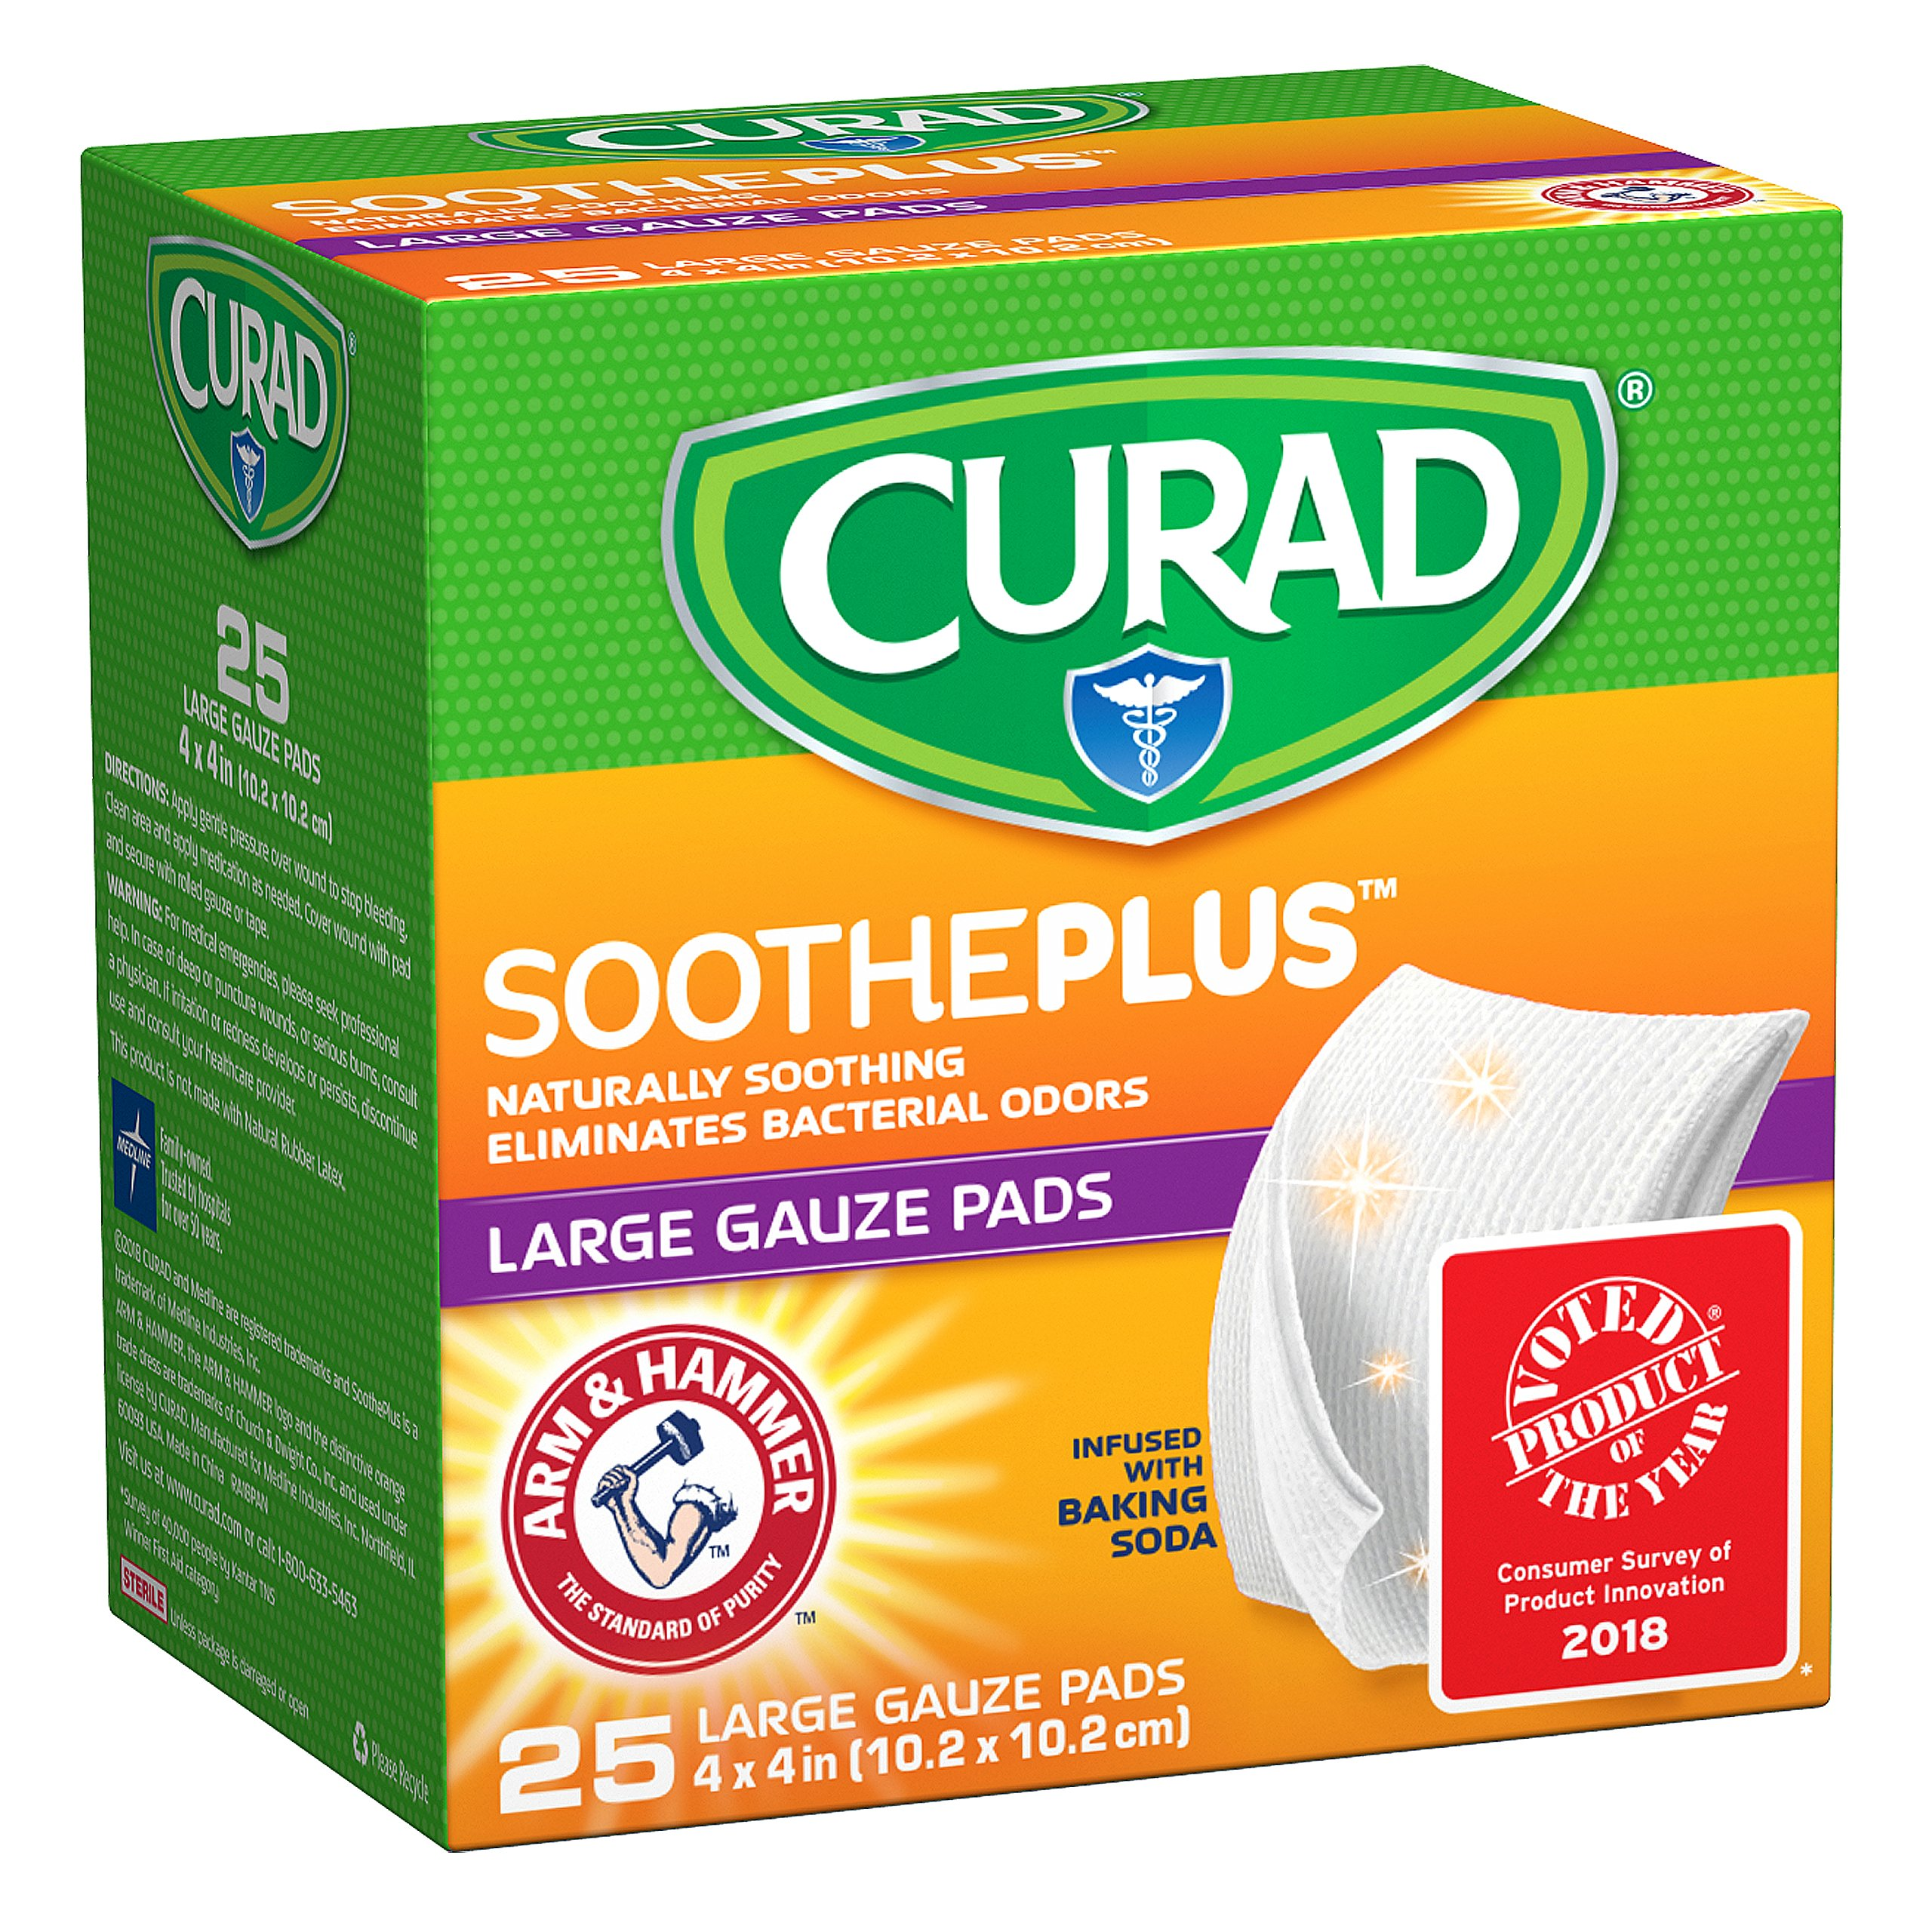 """CURAD SoothePLUS Gauze Pads with ARM & Hammer Baking Soda, 4"""" x 4"""", 25 Count"""